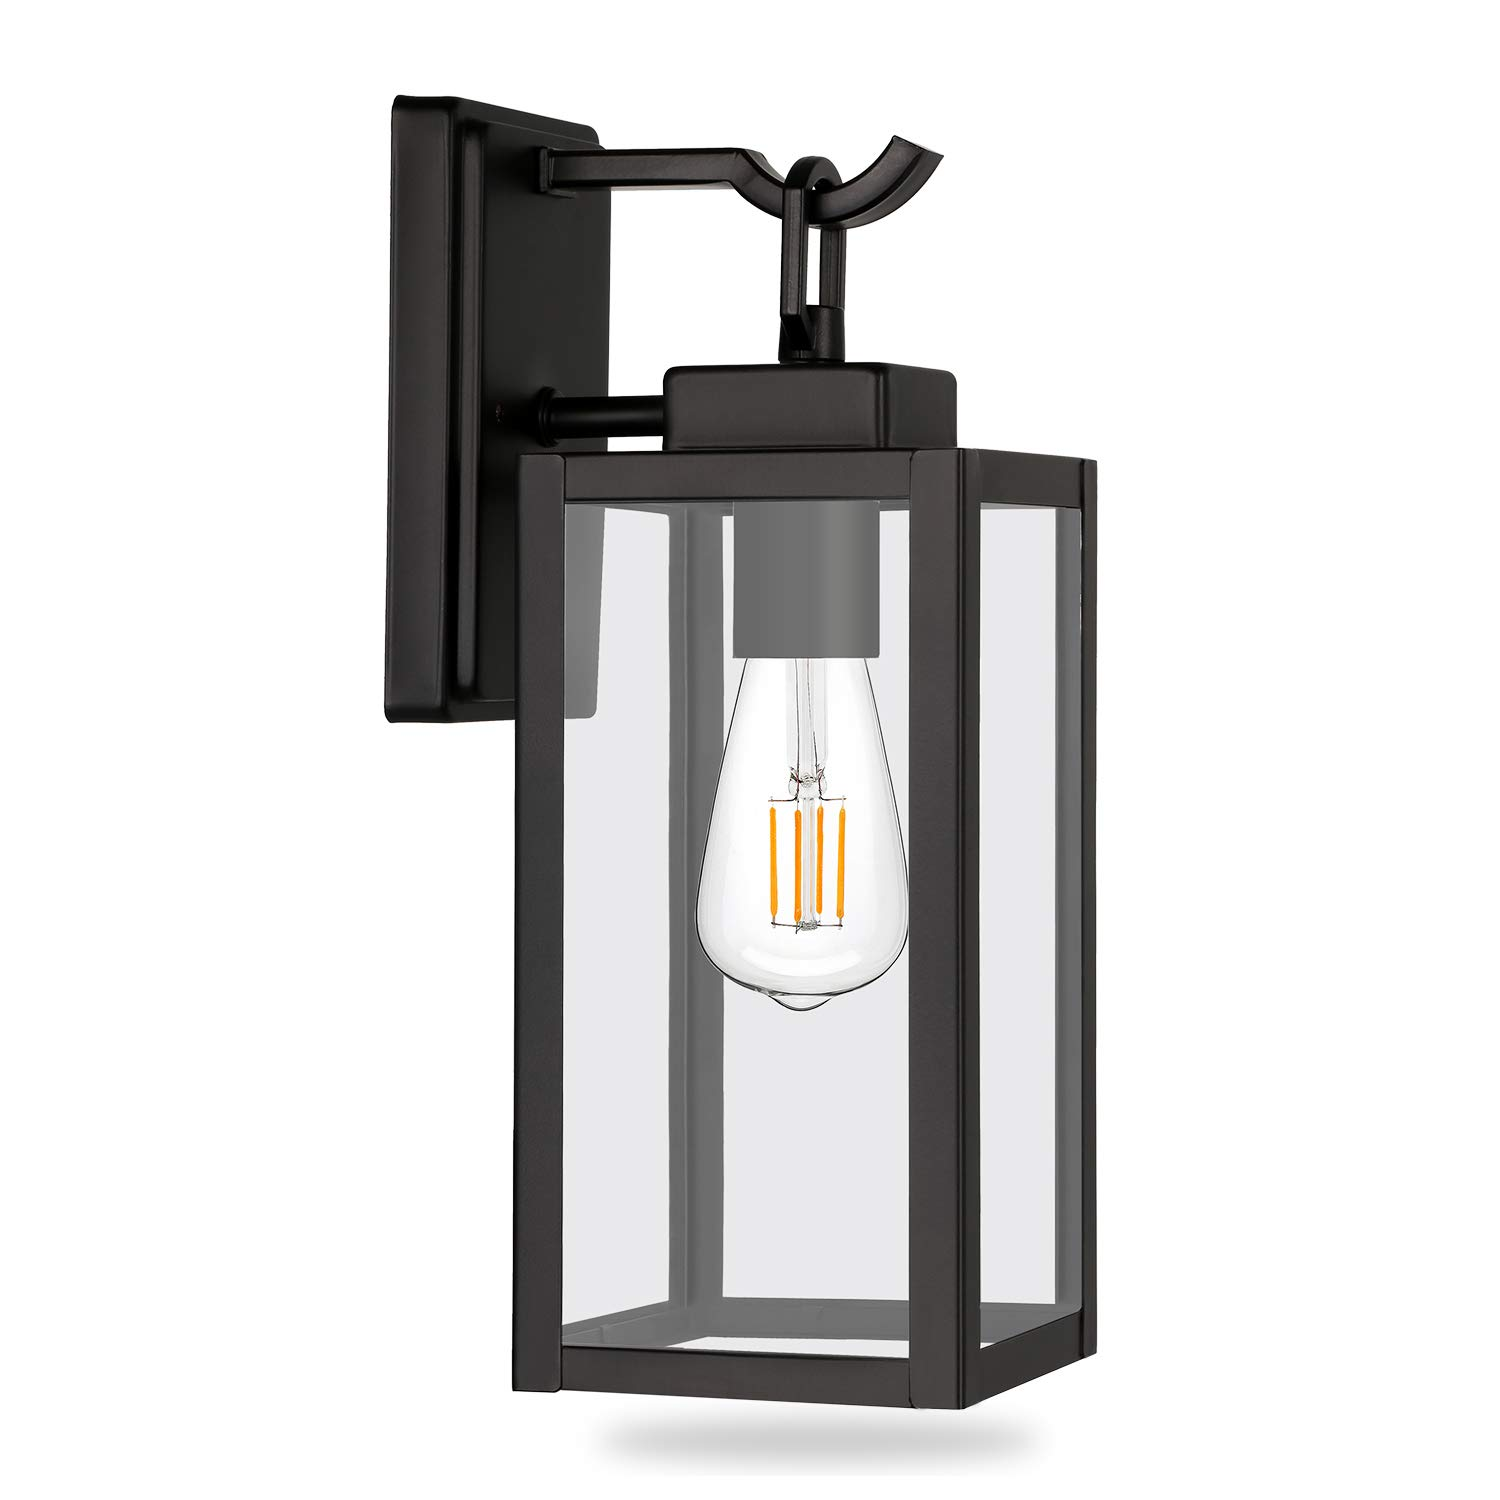 Hykolity Outdoor Wall Lantern, Matte Black Wall Light Fixtures(Bulb Not Included), Architectural Wall Sconce with Clear Glass Shade for Entryway, Porch, Doorway, ETL Listed by hykolity